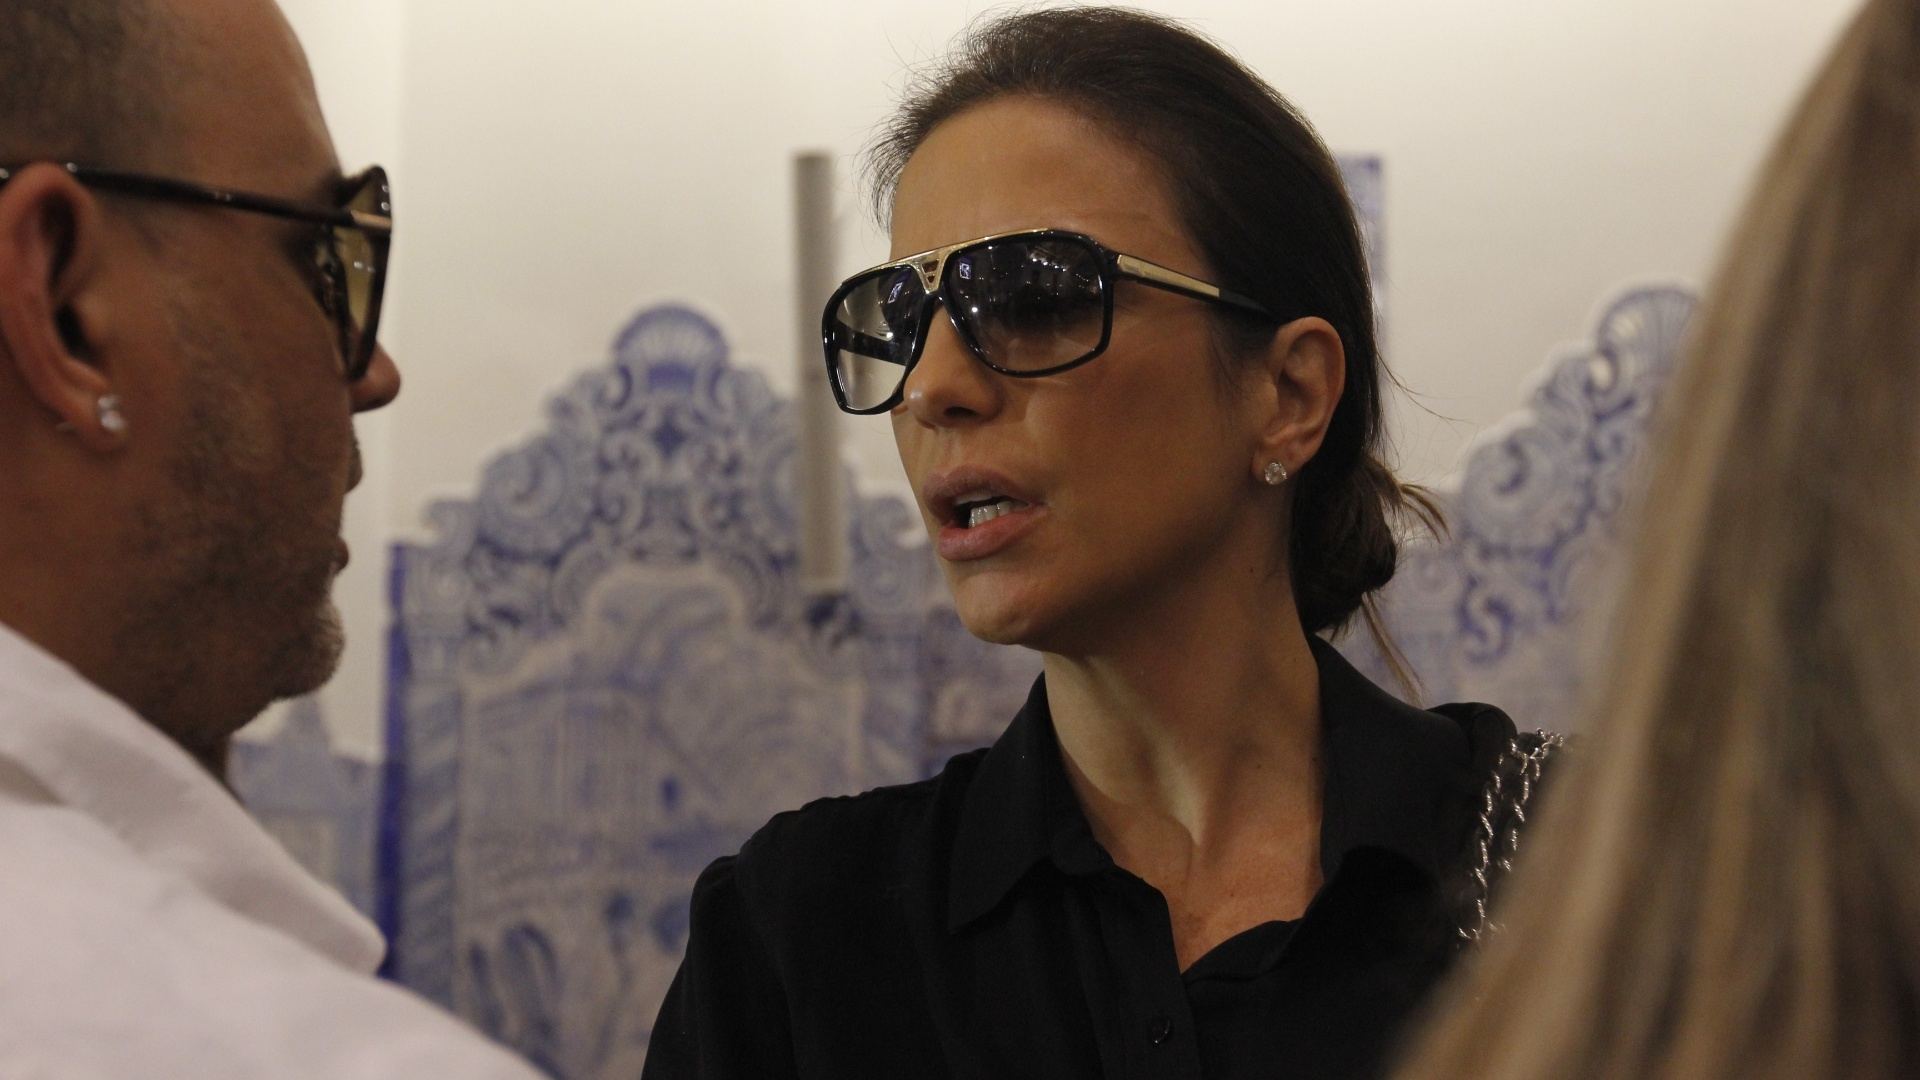 A cantora Ivete Sangalo chega atrasada para a missa de stimo dia da apresentadora Hebe Camargo, na igreja Nossa Senhora do Brasil, em So Paulo (5/10/12)